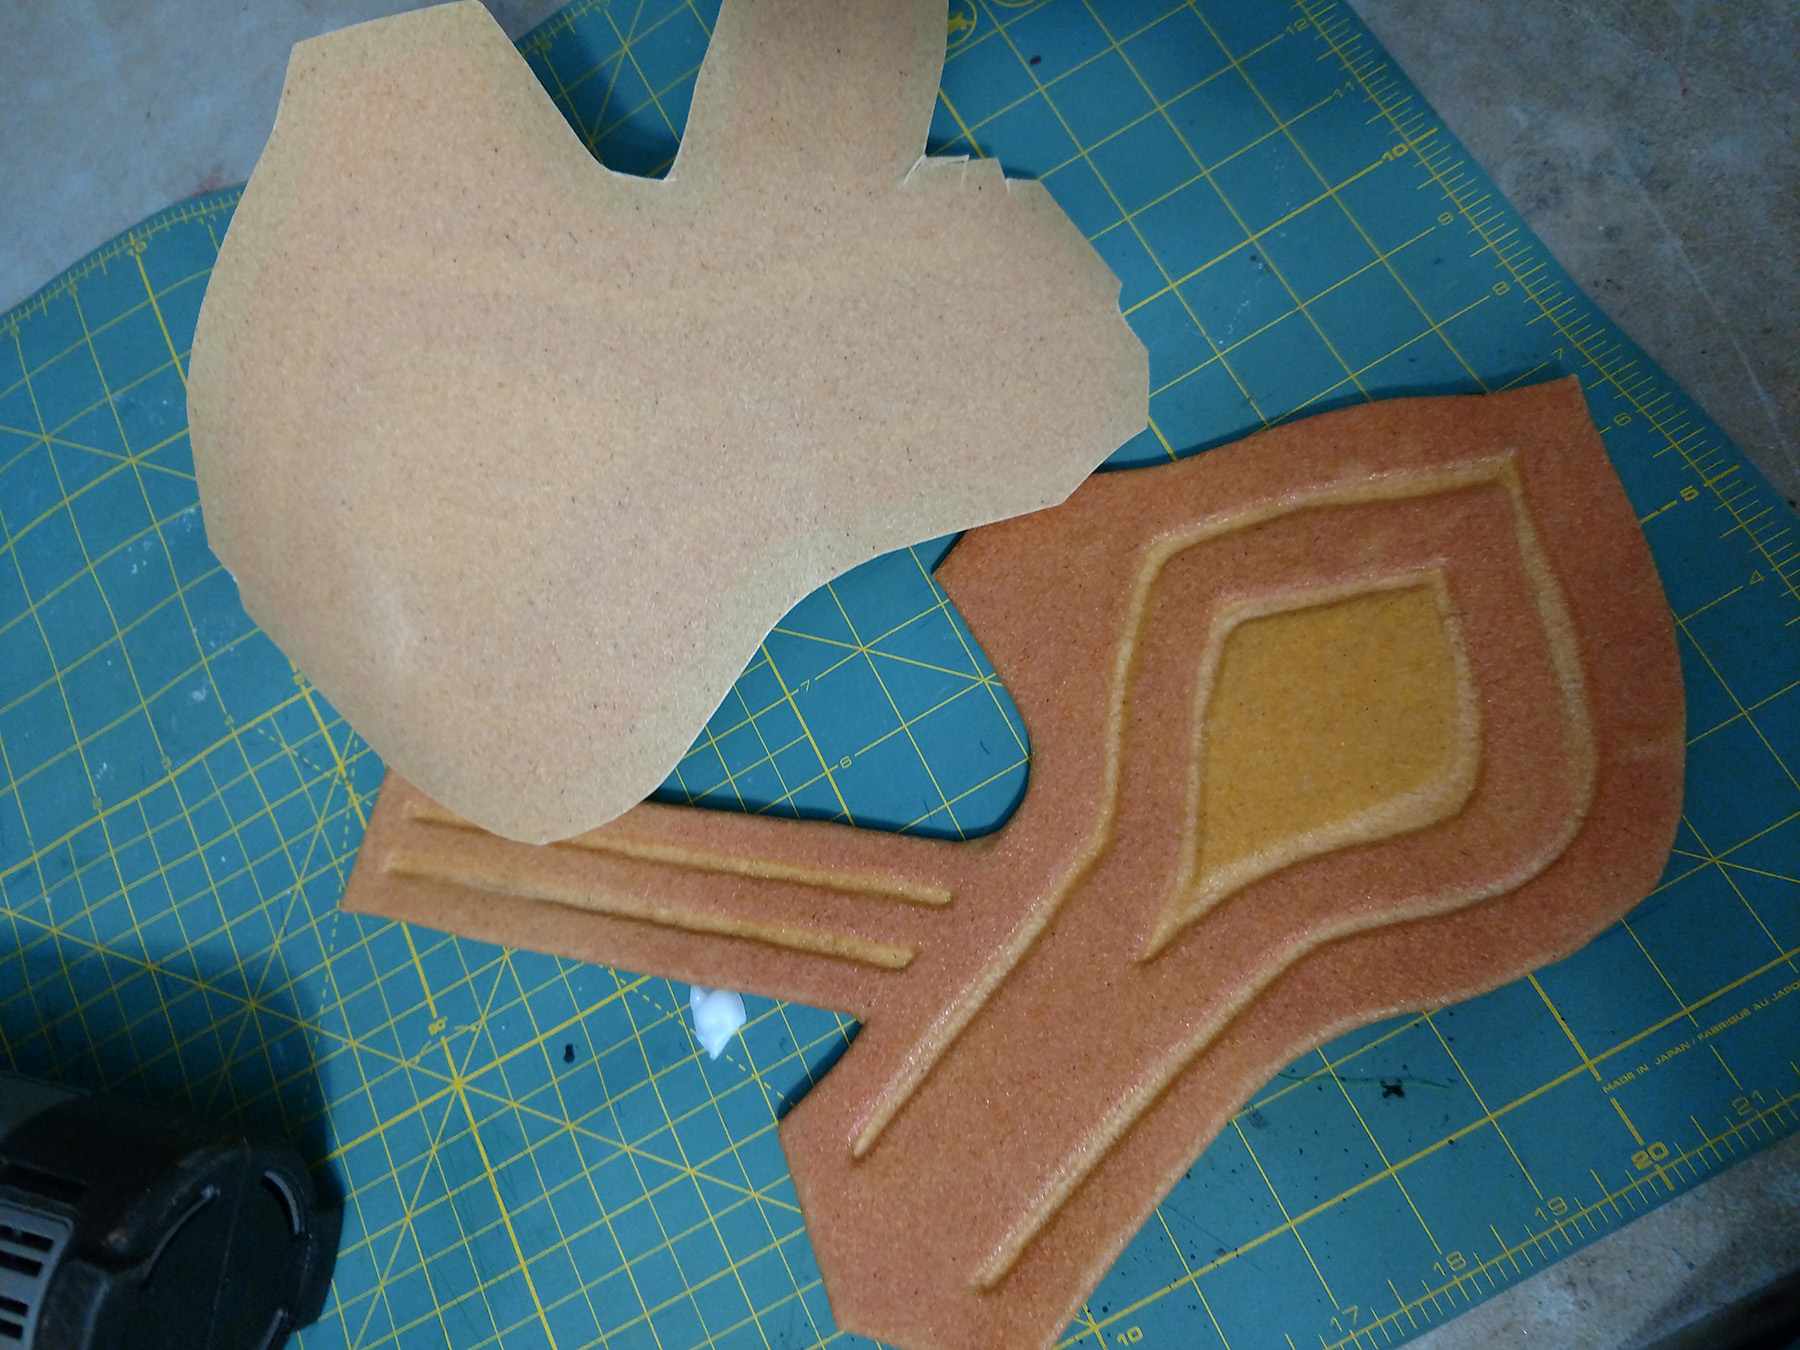 One bracer with the worbla molded down into the design is shown next to a loose piece of worbla cut to shape, ready for the second bracer.